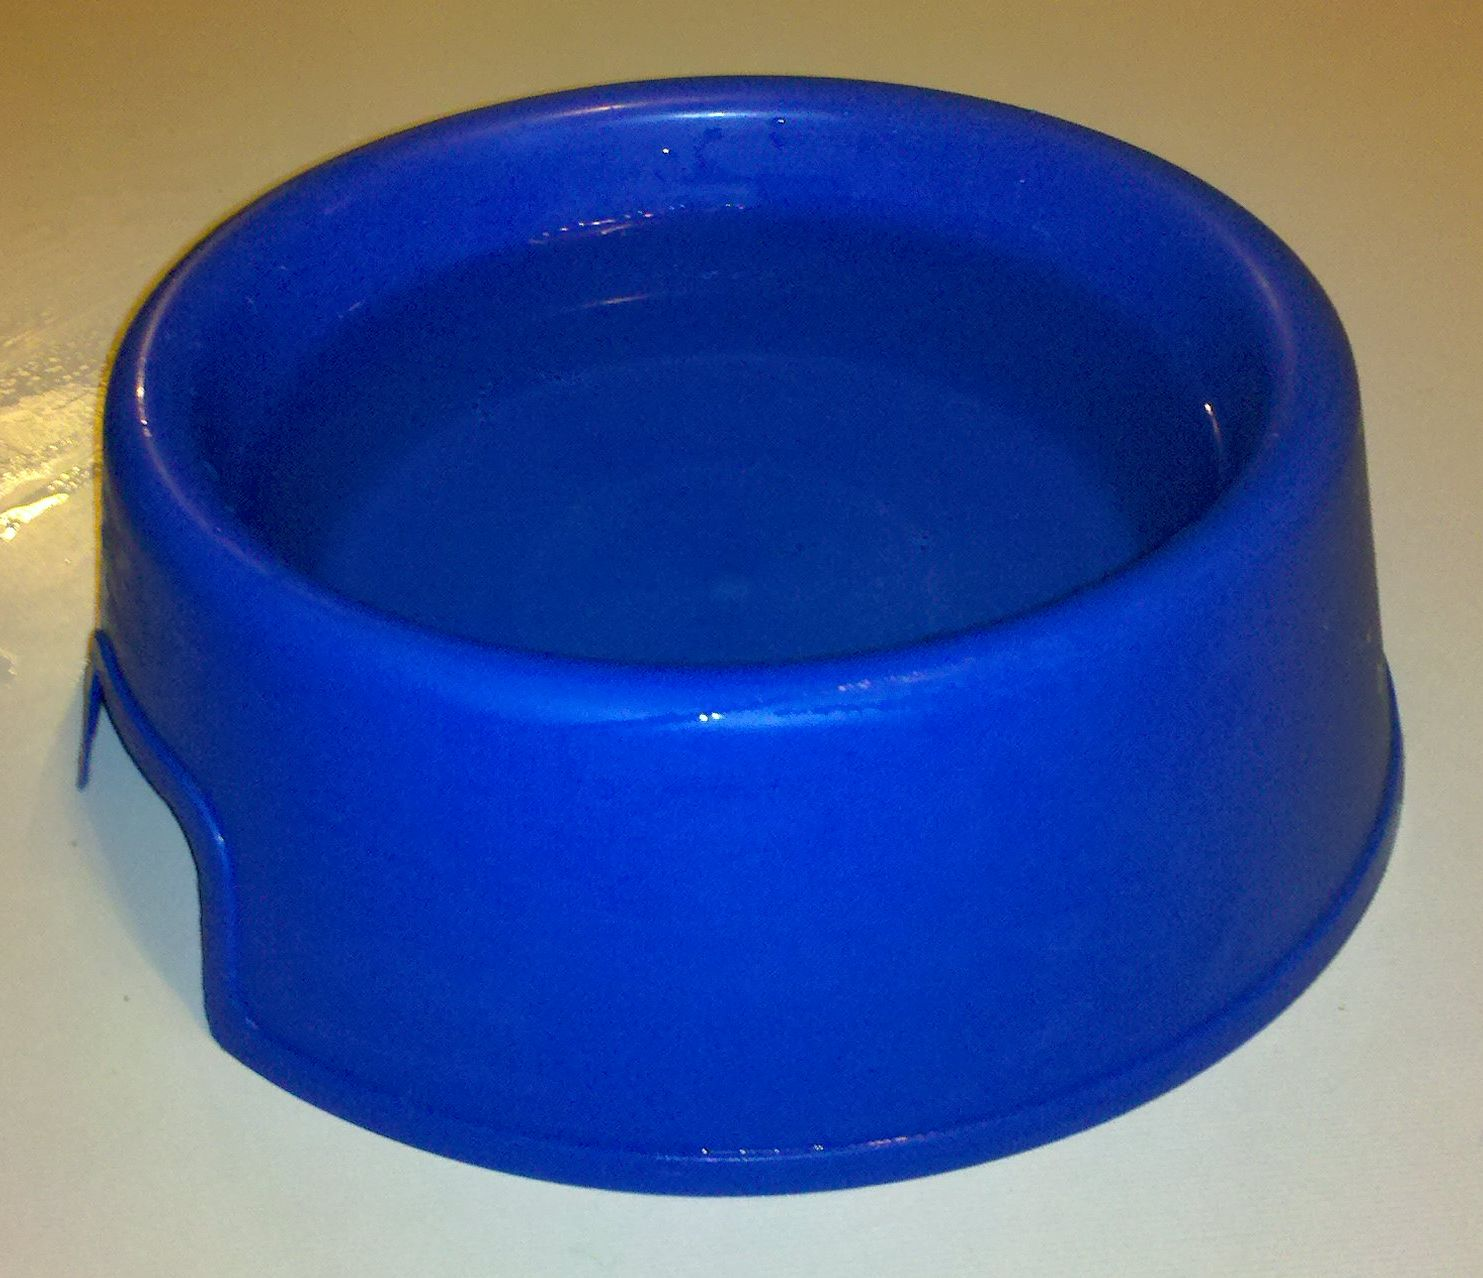 Dog Bowl With Water Images & Pictures - Becuo